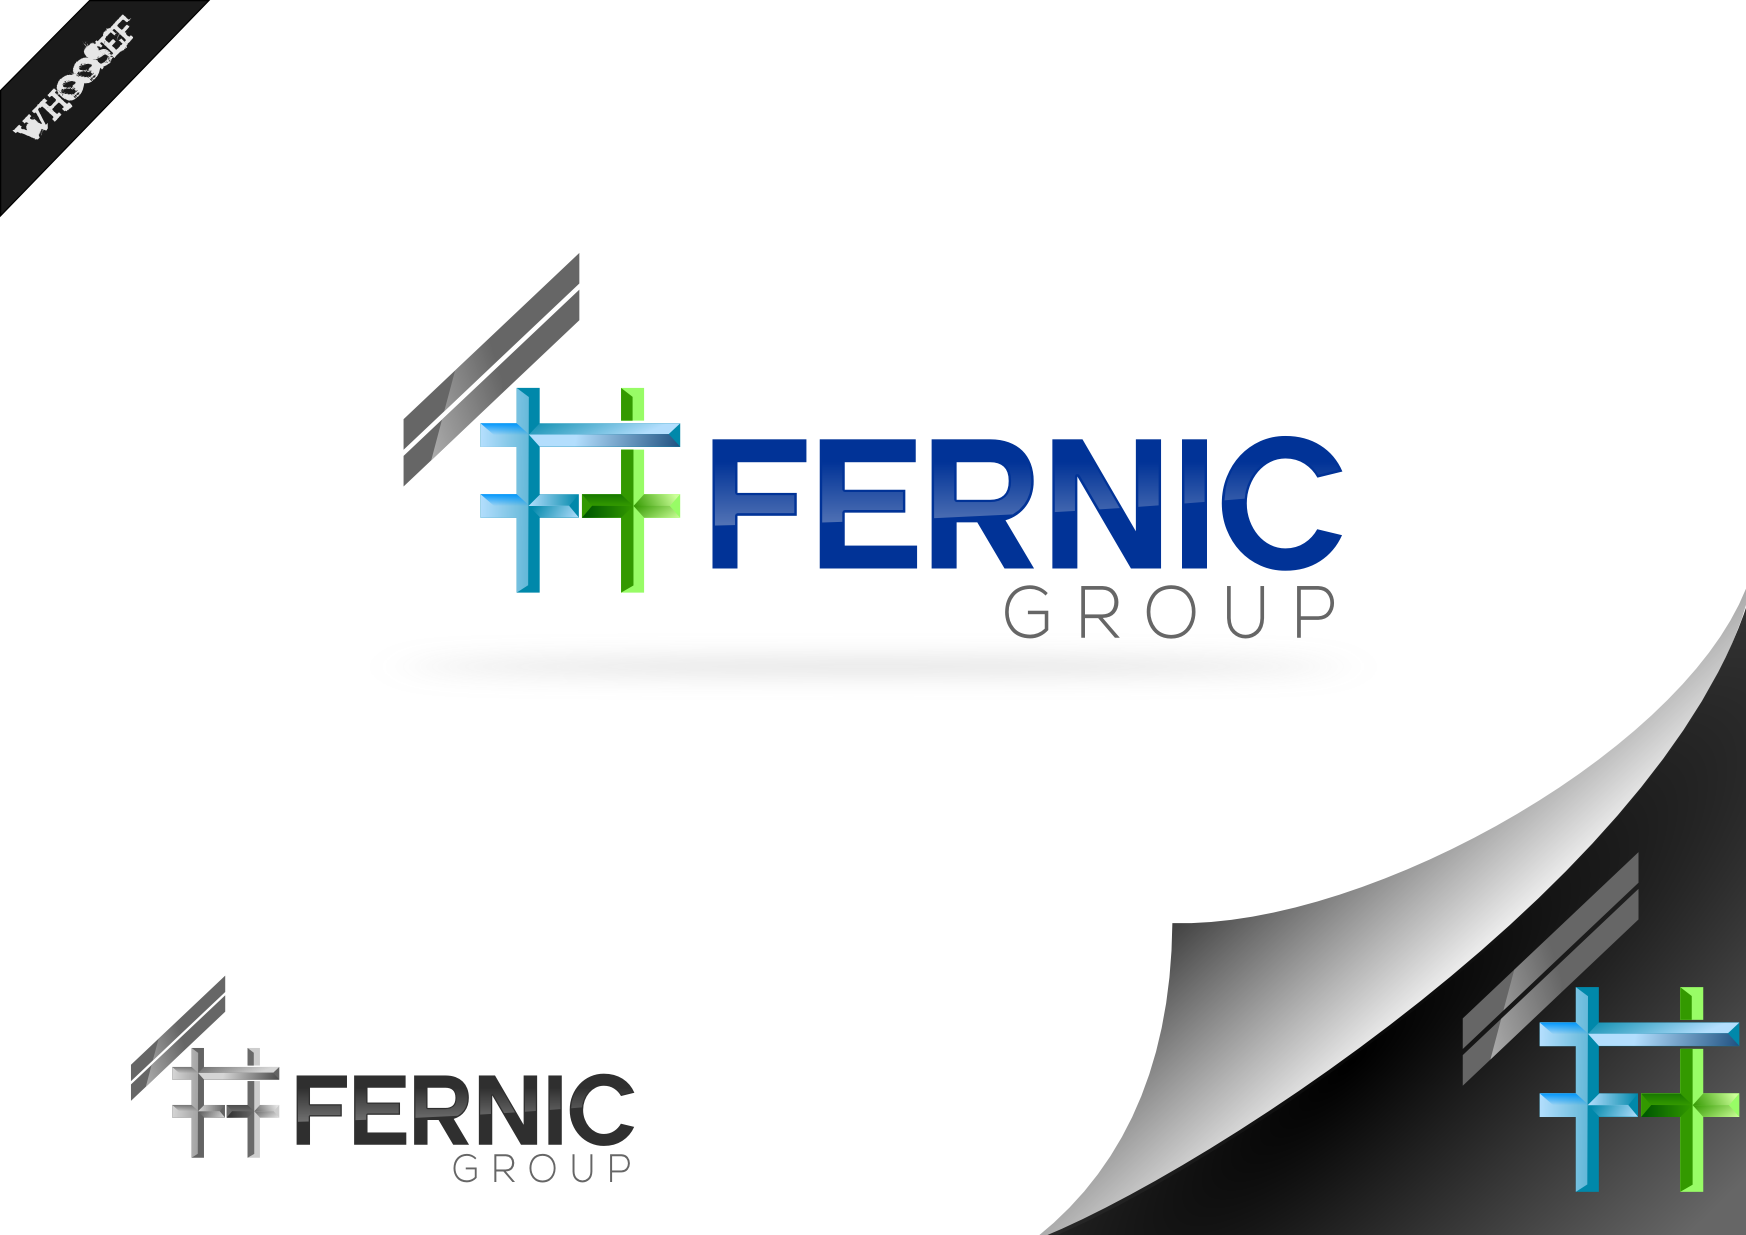 Logo Design by whoosef - Entry No. 66 in the Logo Design Contest Artistic Logo Design for Fernic Goup.